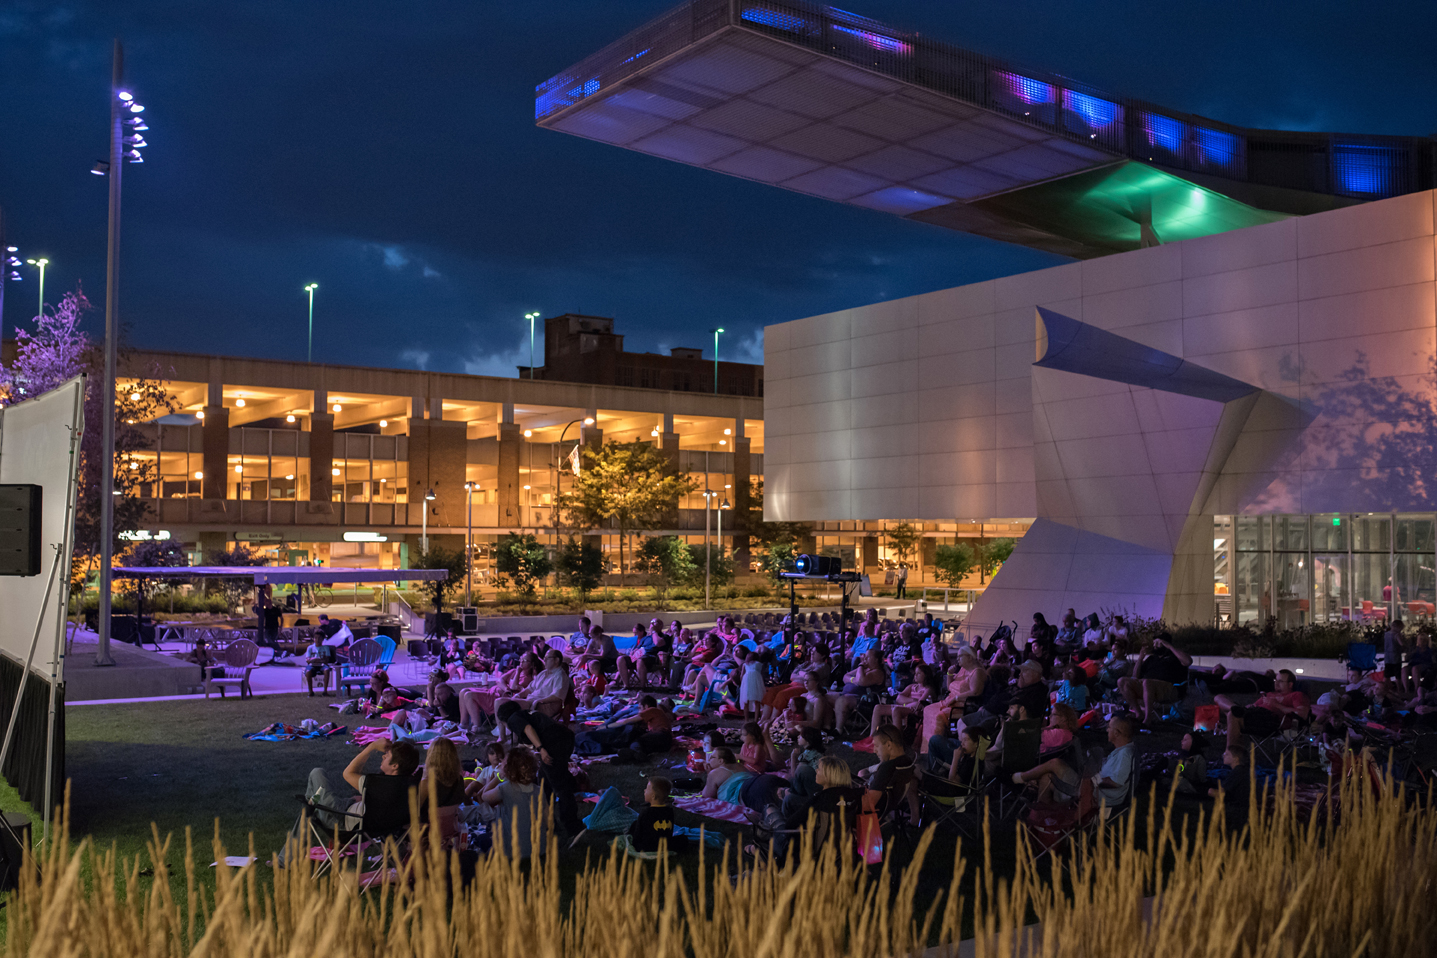 LEAD IMAGE: Family Movie Night (July 27, 2017), courtesy of the Akron Art Museum. Photography by Chris Rutan Photography.